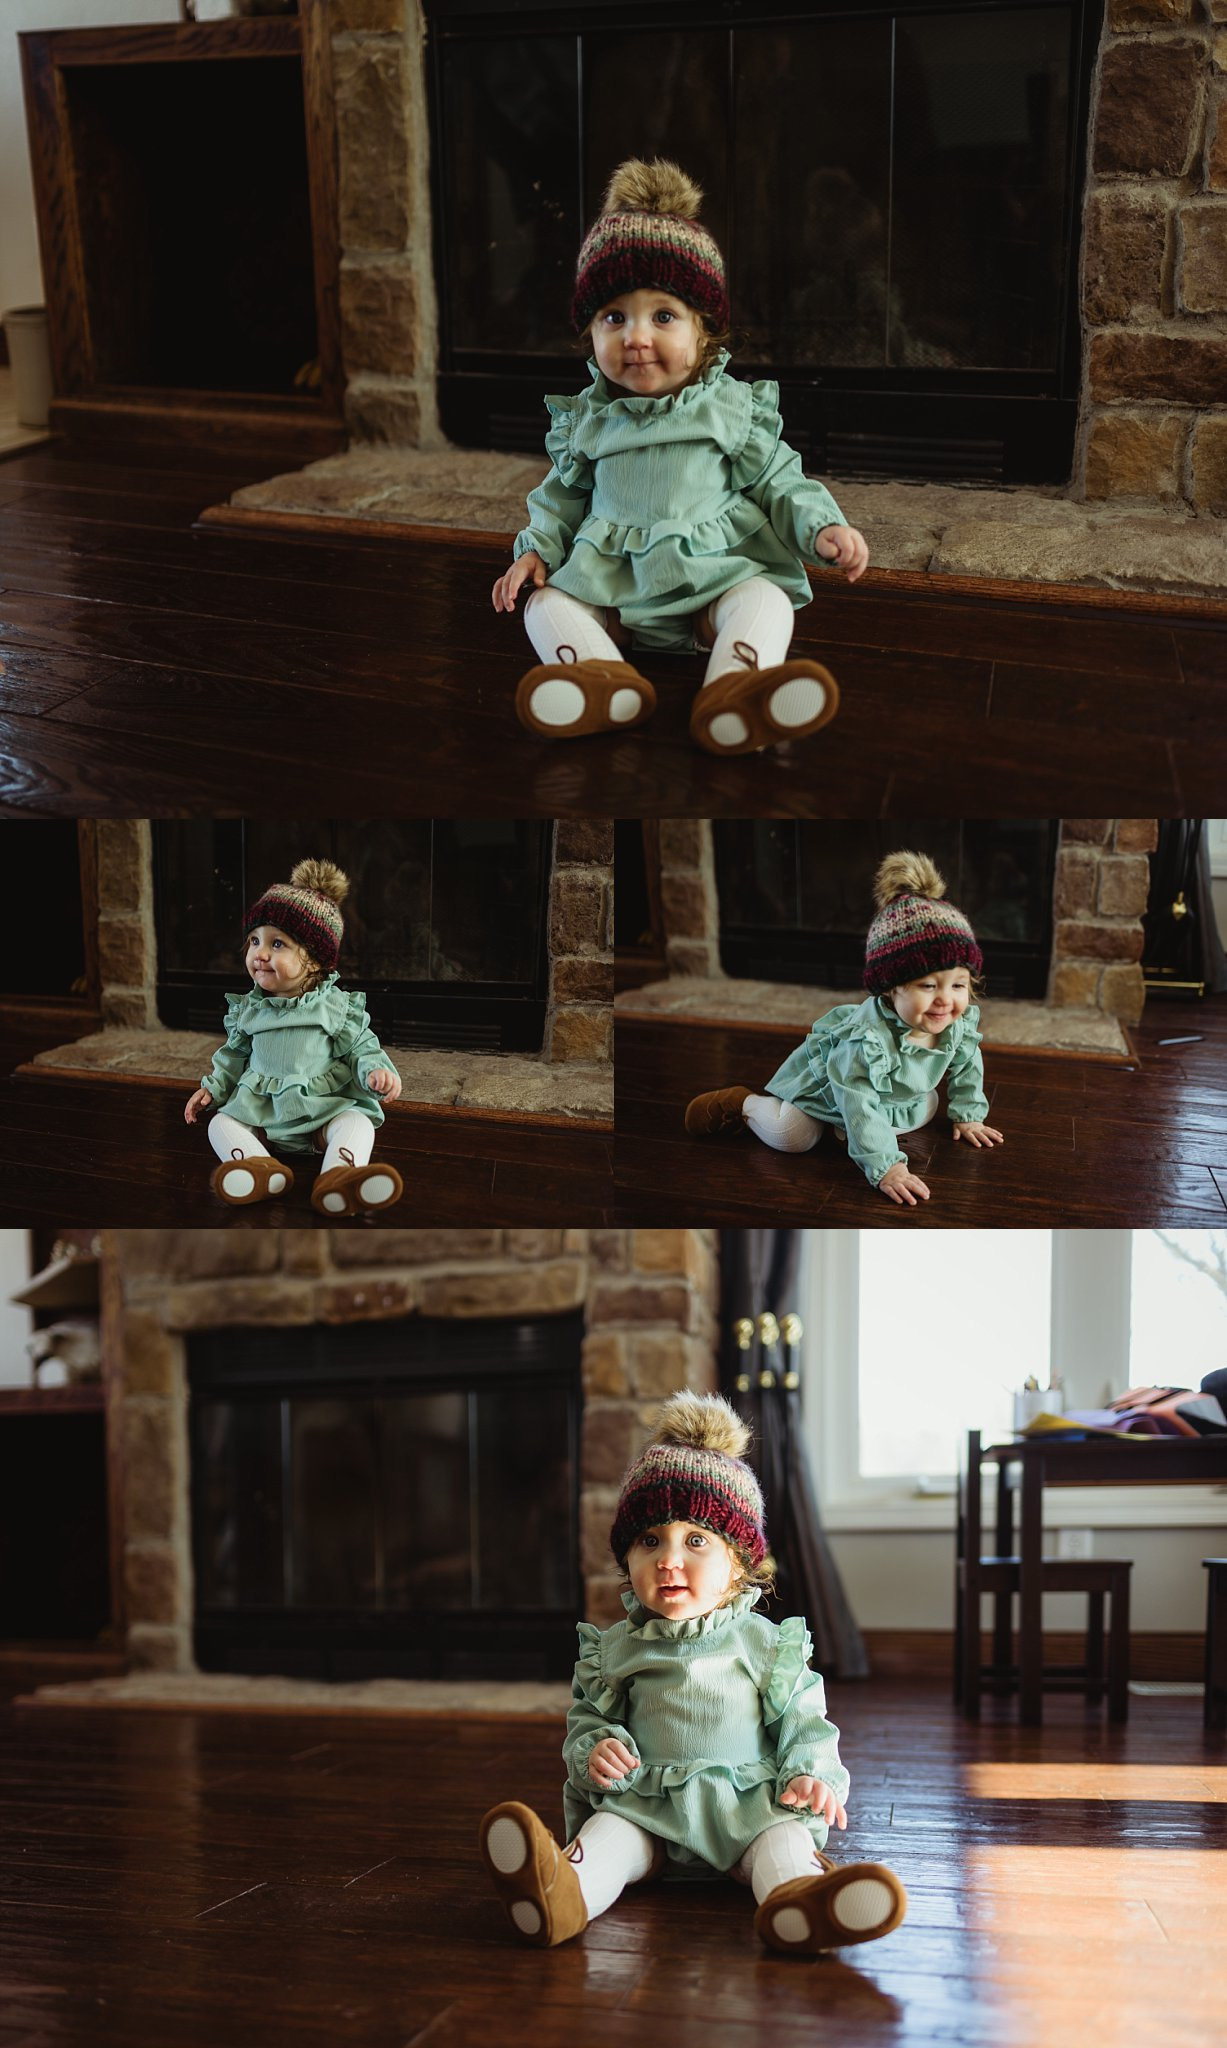 Baby sits in living room during family lifestyle/documentary photography session.